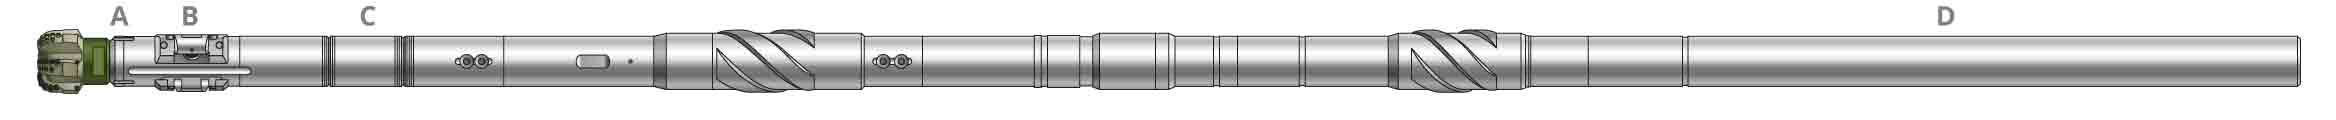 A simplified side-view rendering of a shortened PowerDrive vorteX RSS BHA, including the DynaForce drilling motor